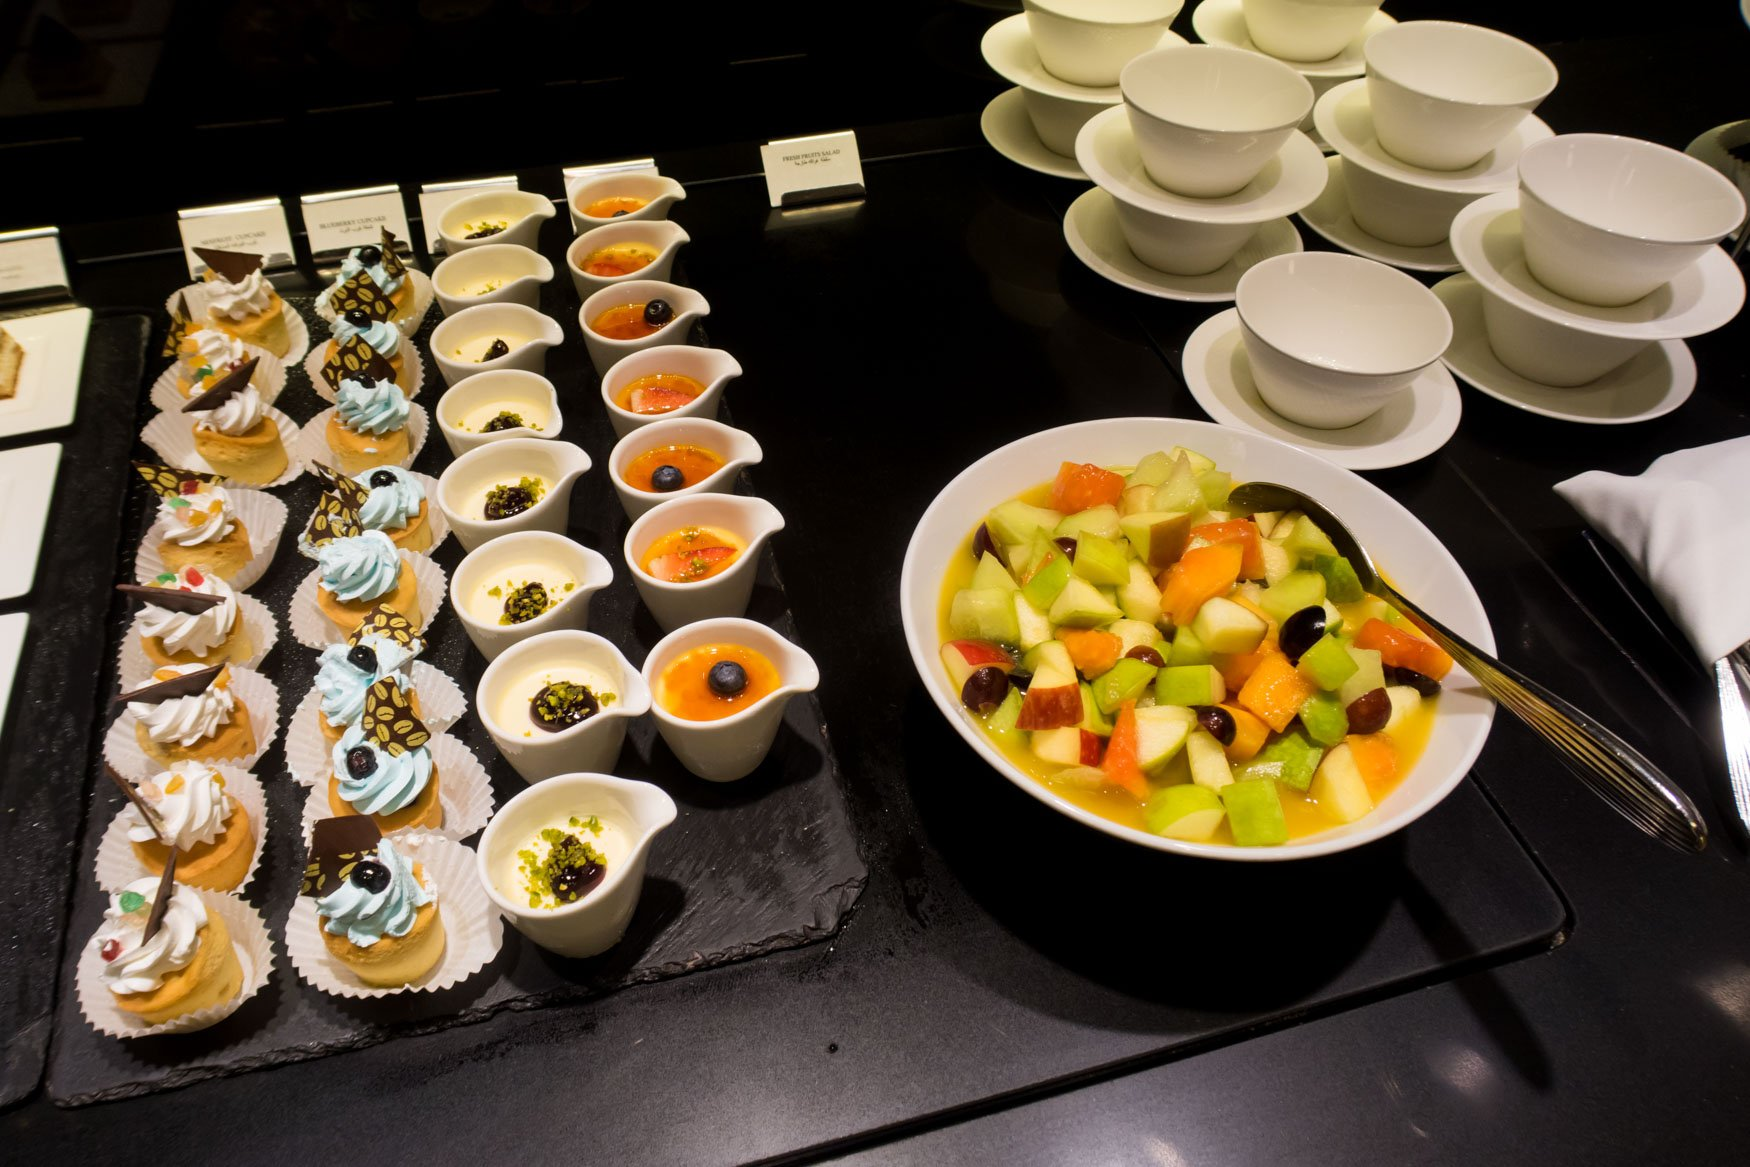 Fruit Salad and Desserts in Al Mourjan Lounge